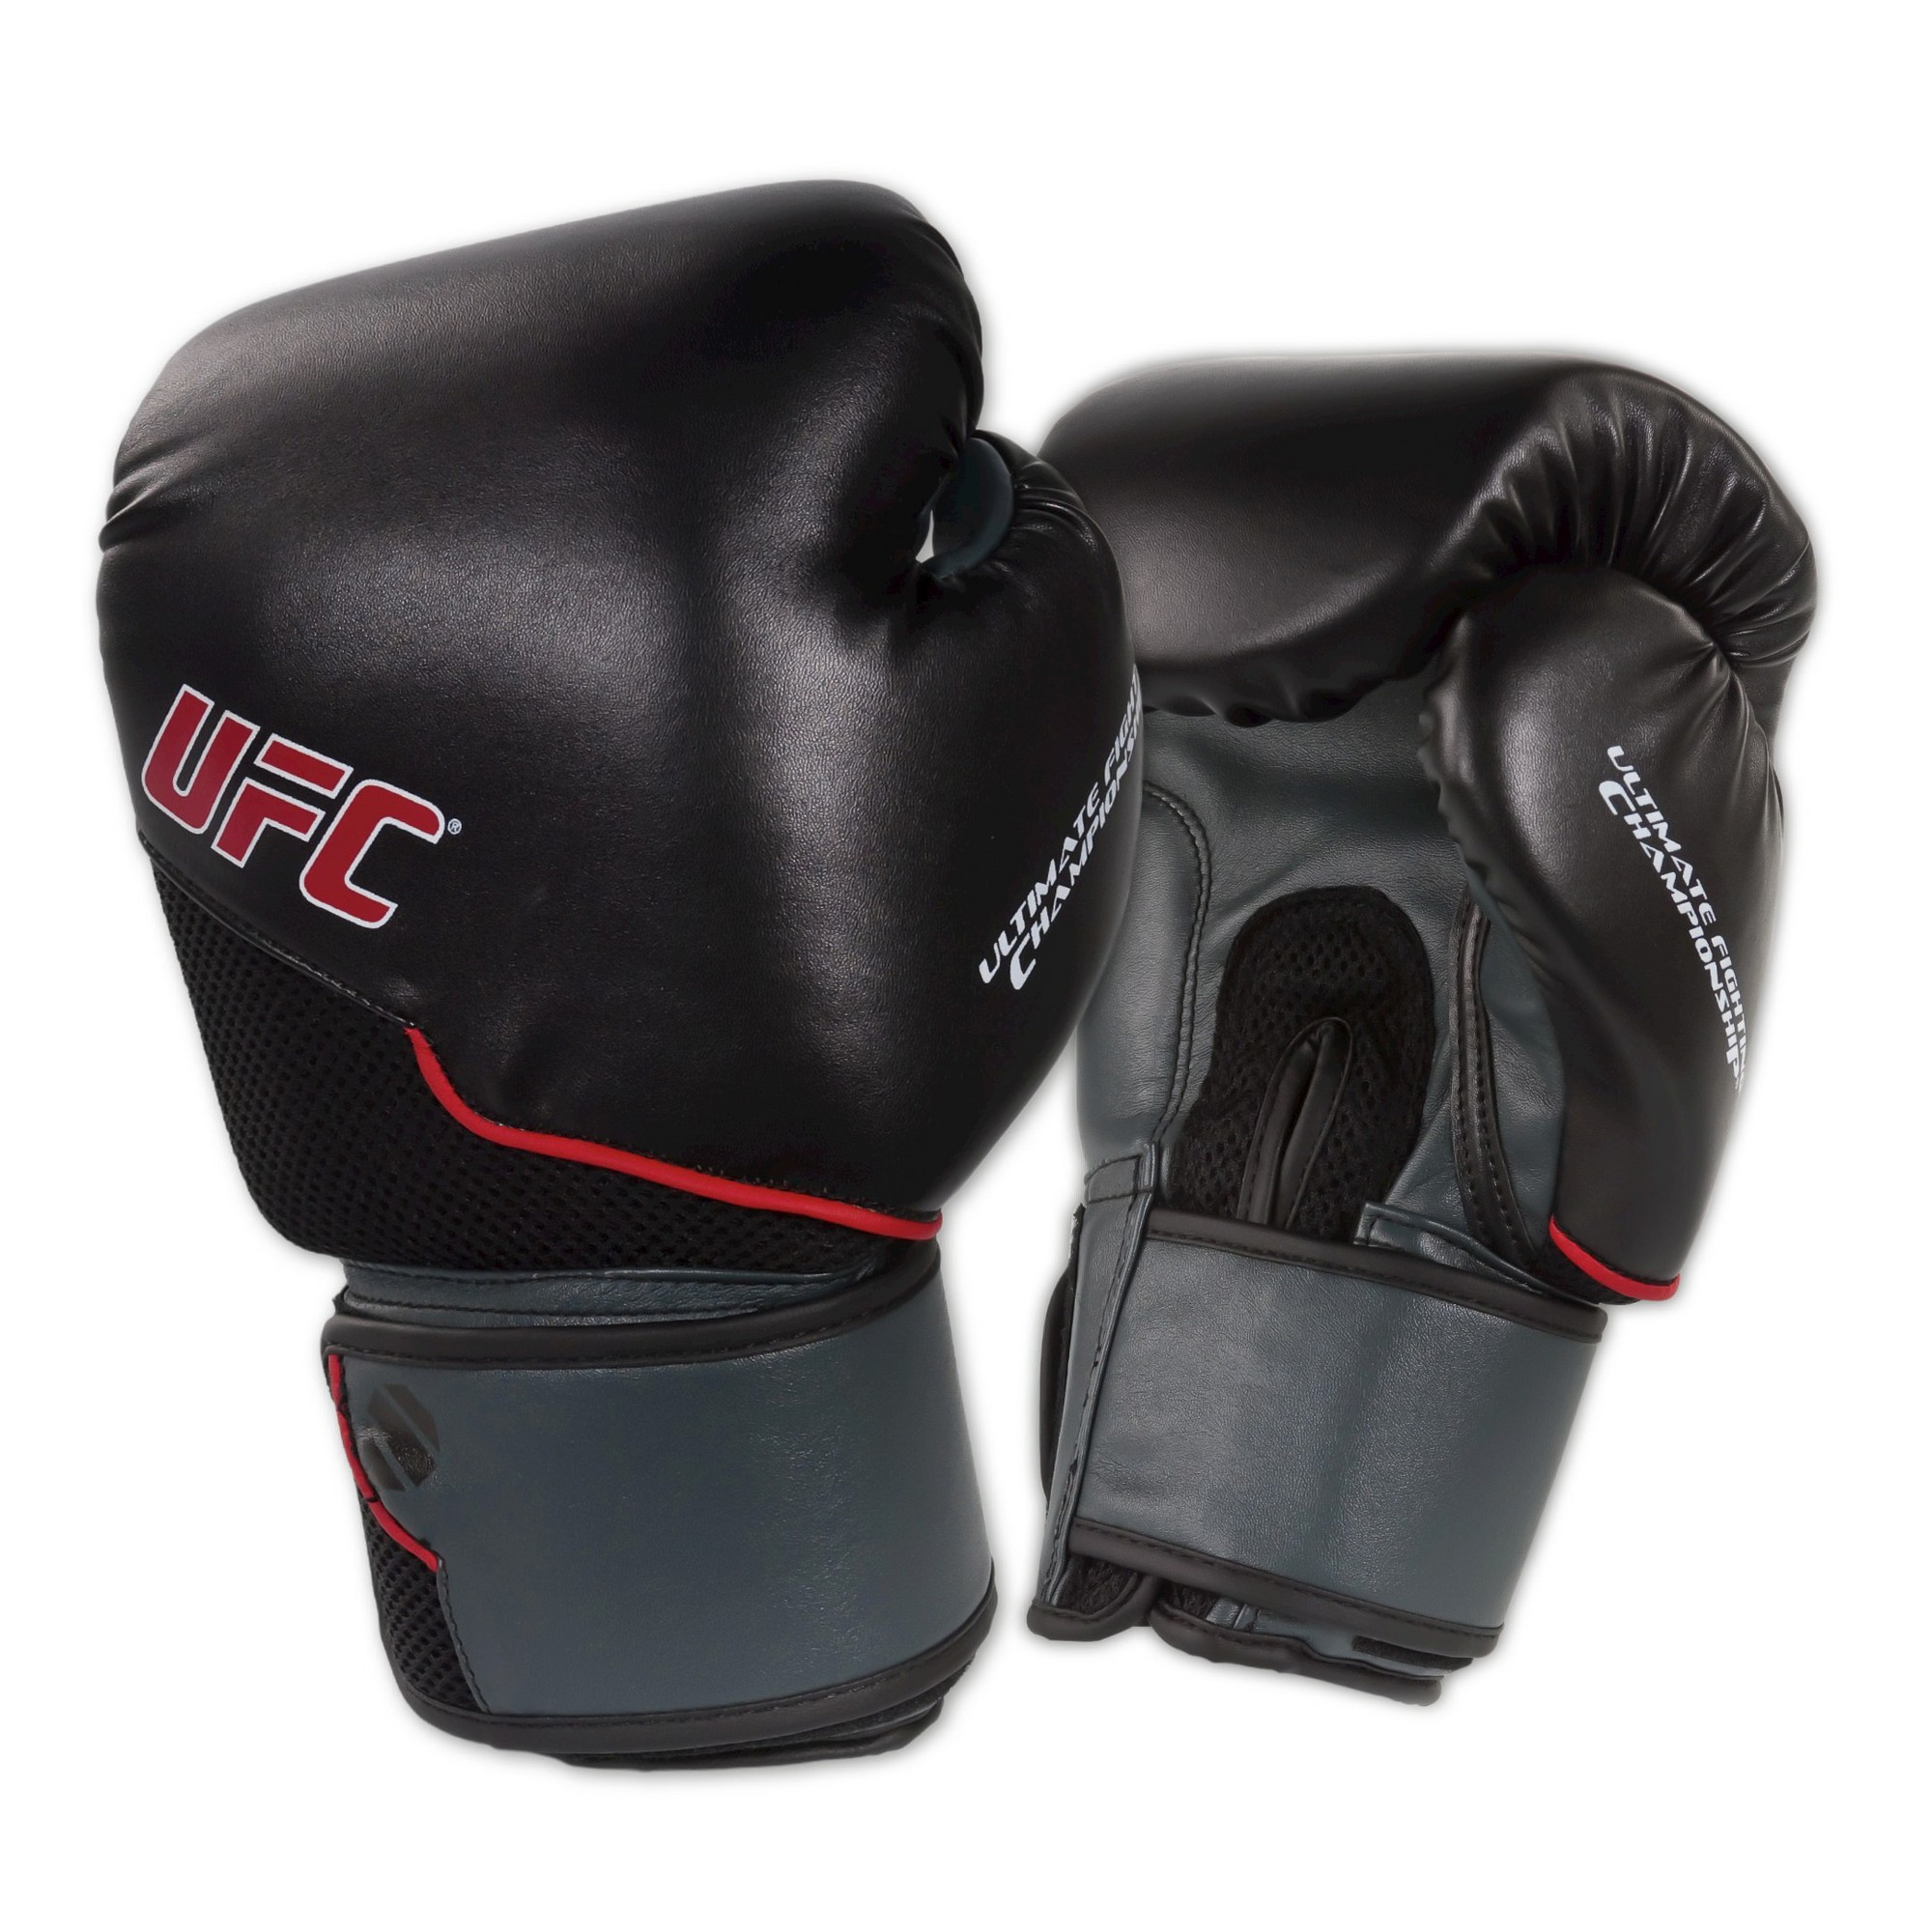 FAIRTEX TRAINER'S PROTECTIVE VEST TV1 BOXING GEAR MMA EQUIPMENT BEST SELLING